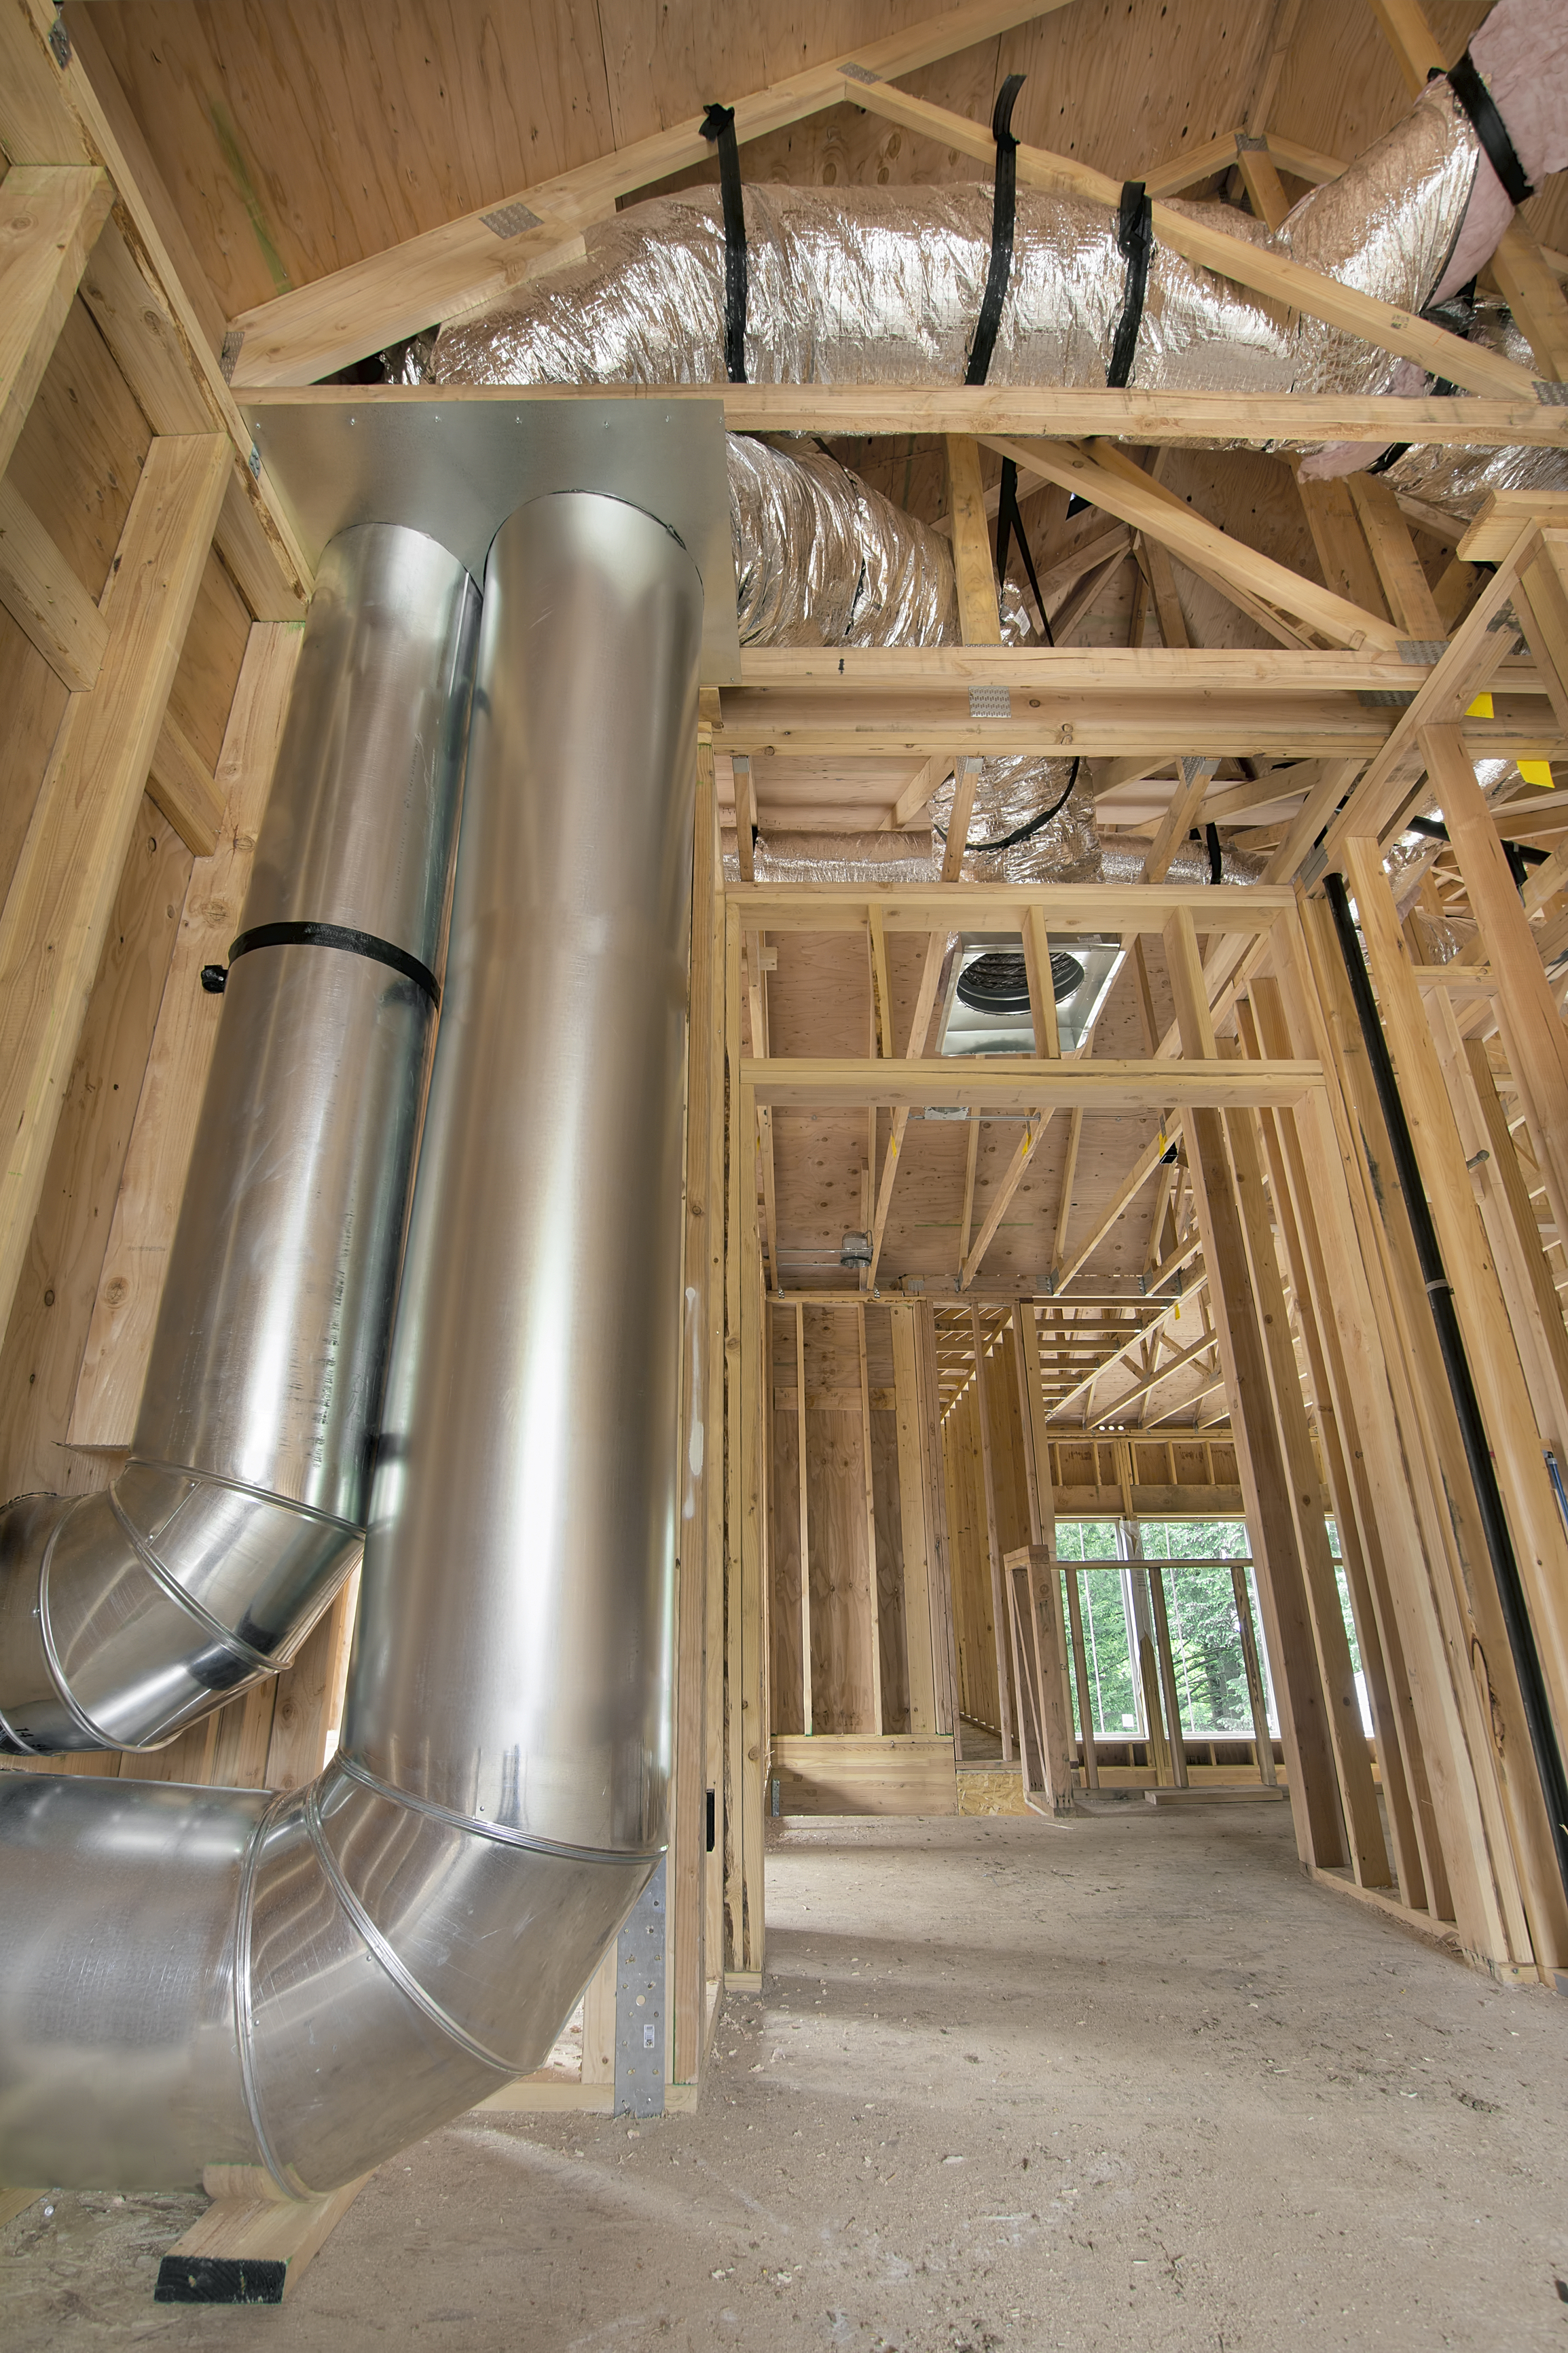 Home Air Conditioning Ductwork